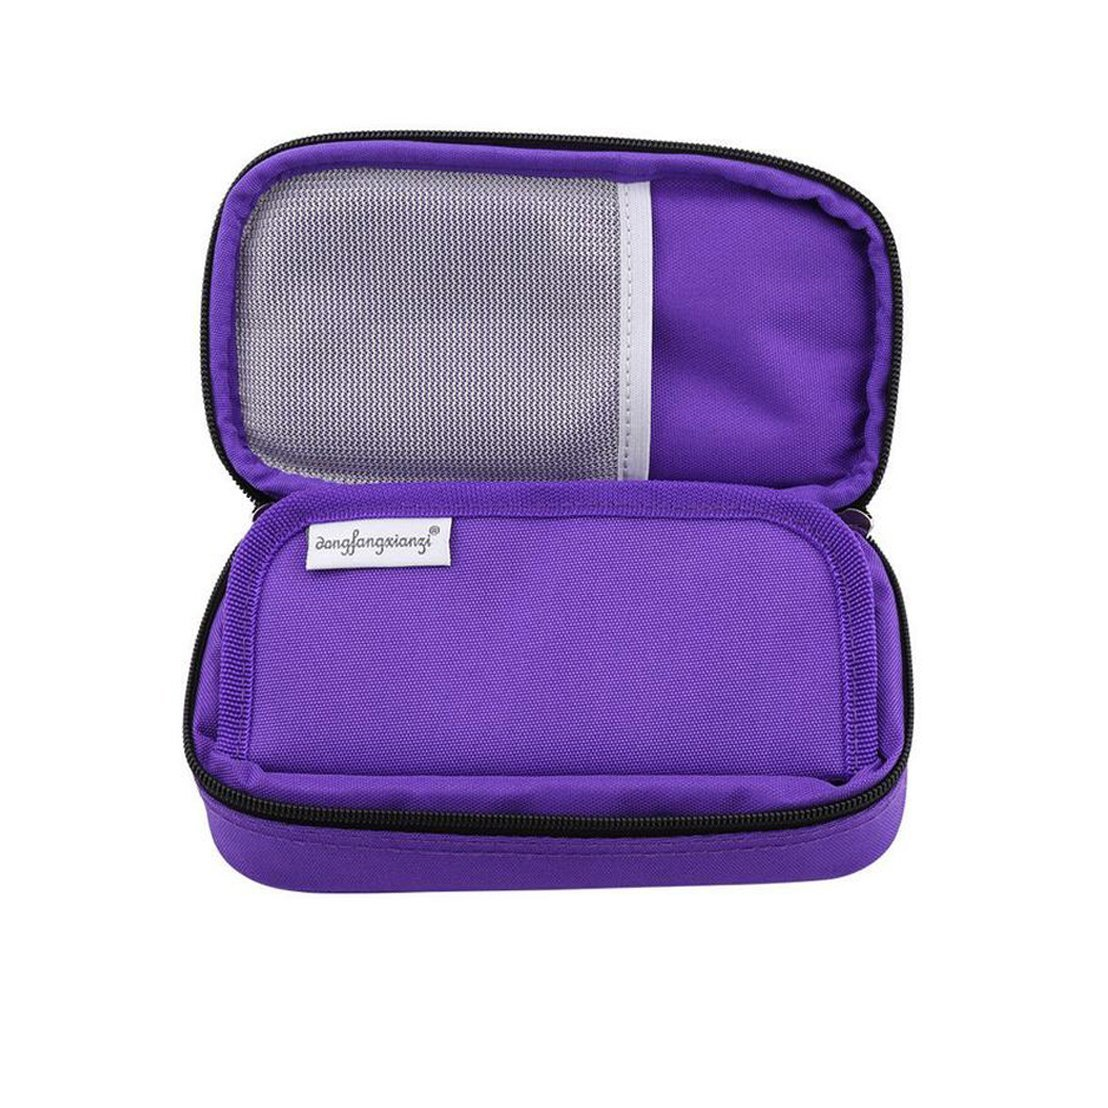 Vianber Portable Insulin Organizer Cooler Bag Medical Care Protector Case Travel Cooler Bag for The Diabetic (Purple)